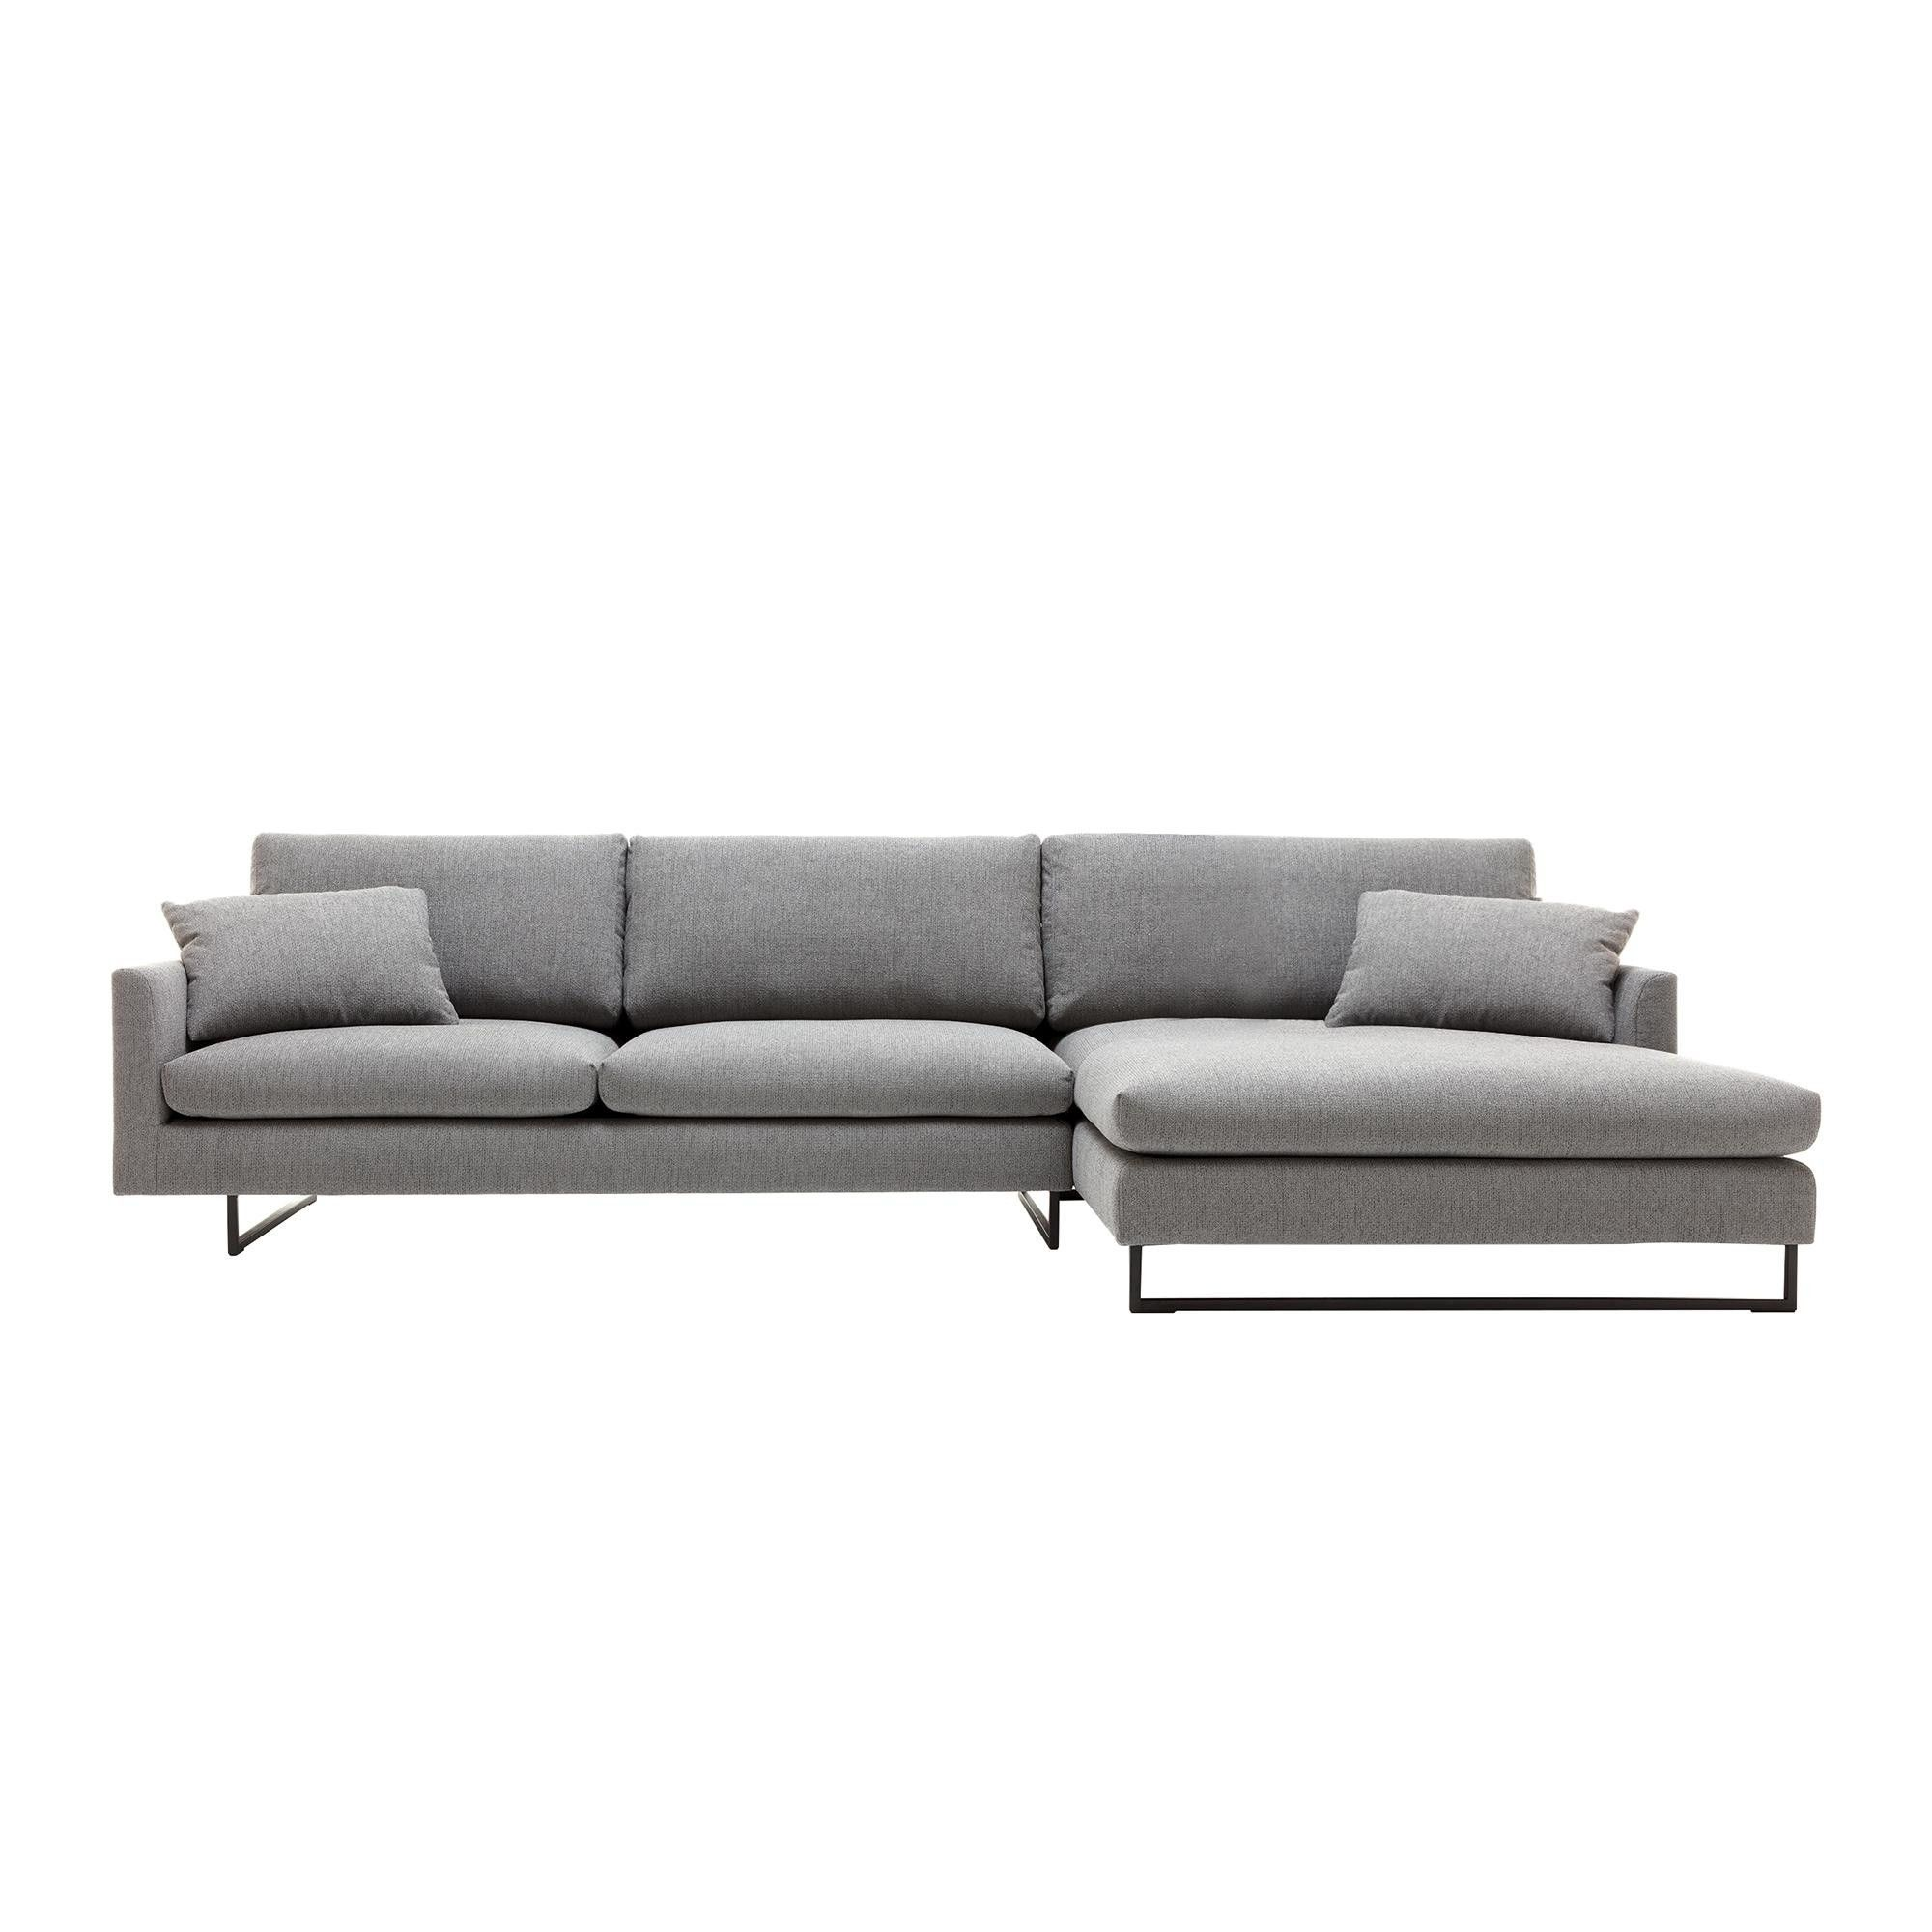 Freistil Rolf Benz Freistil 134 Loungesofa 330x177cm Ambientedirect Freistil Rolf Benz Sofa Lounge